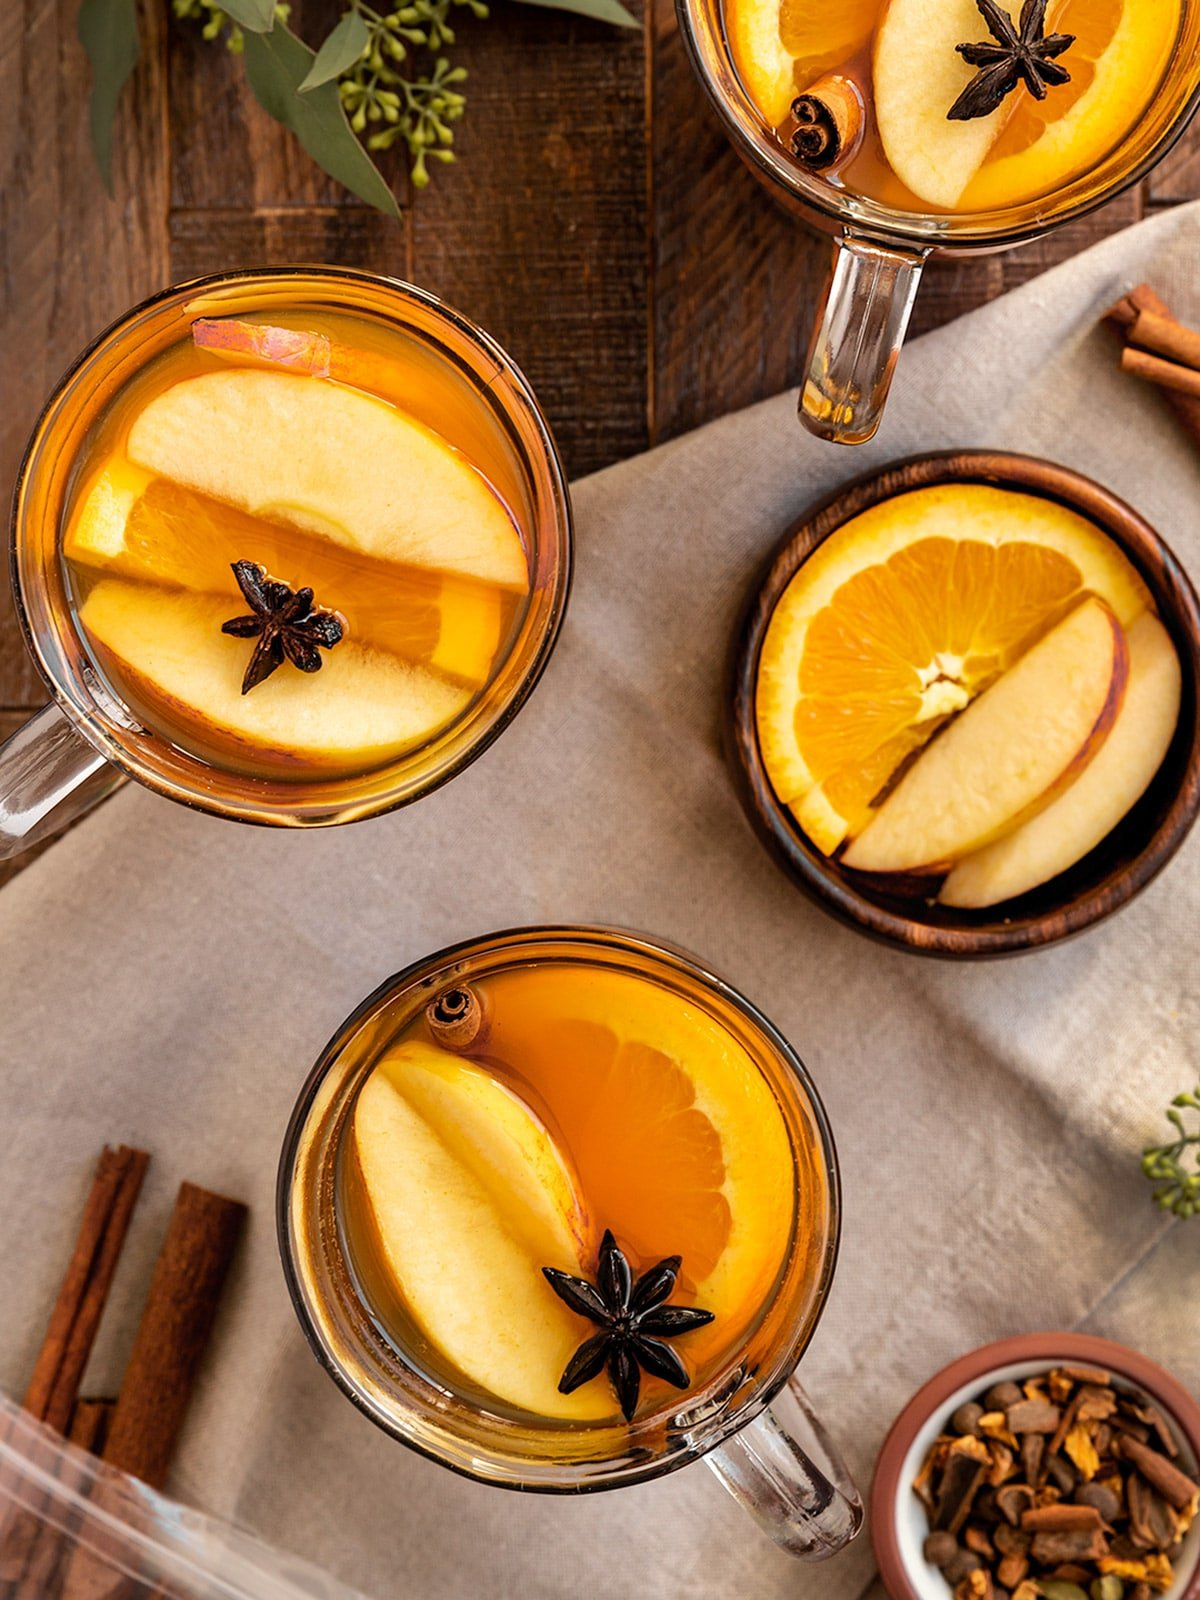 three cups of hot cider with fresh apple slices, orange slices, cinnamon sticks, and star anise as garnish